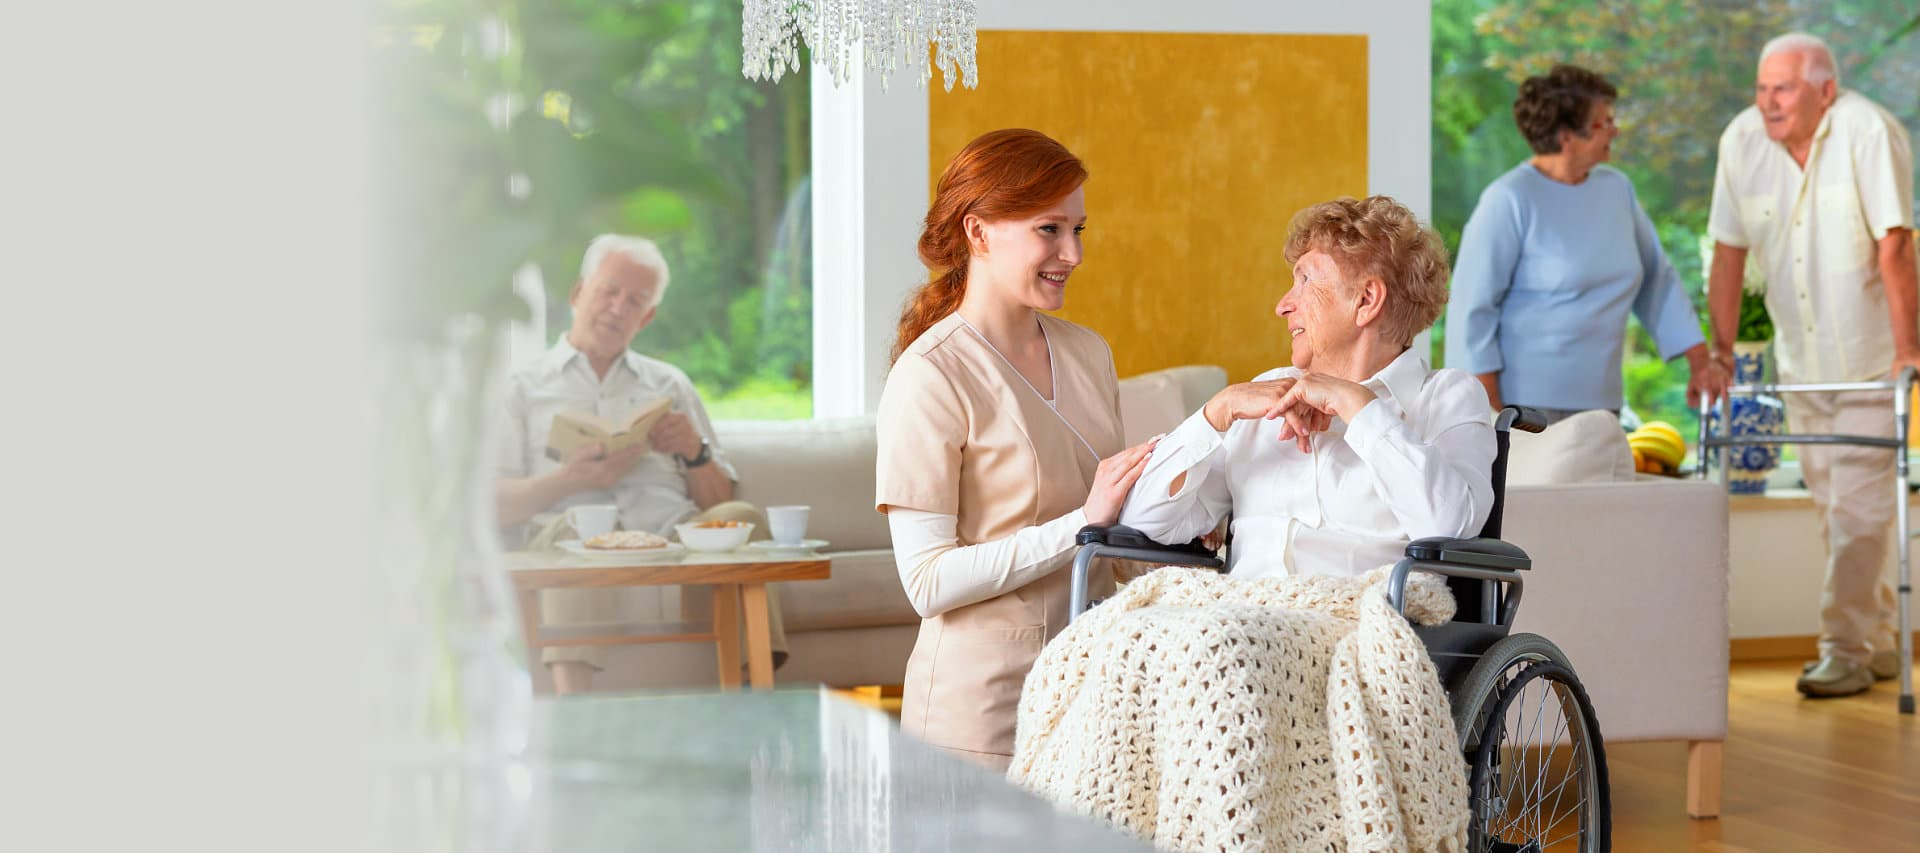 caregiver talking to a senior woman with seniors on their background